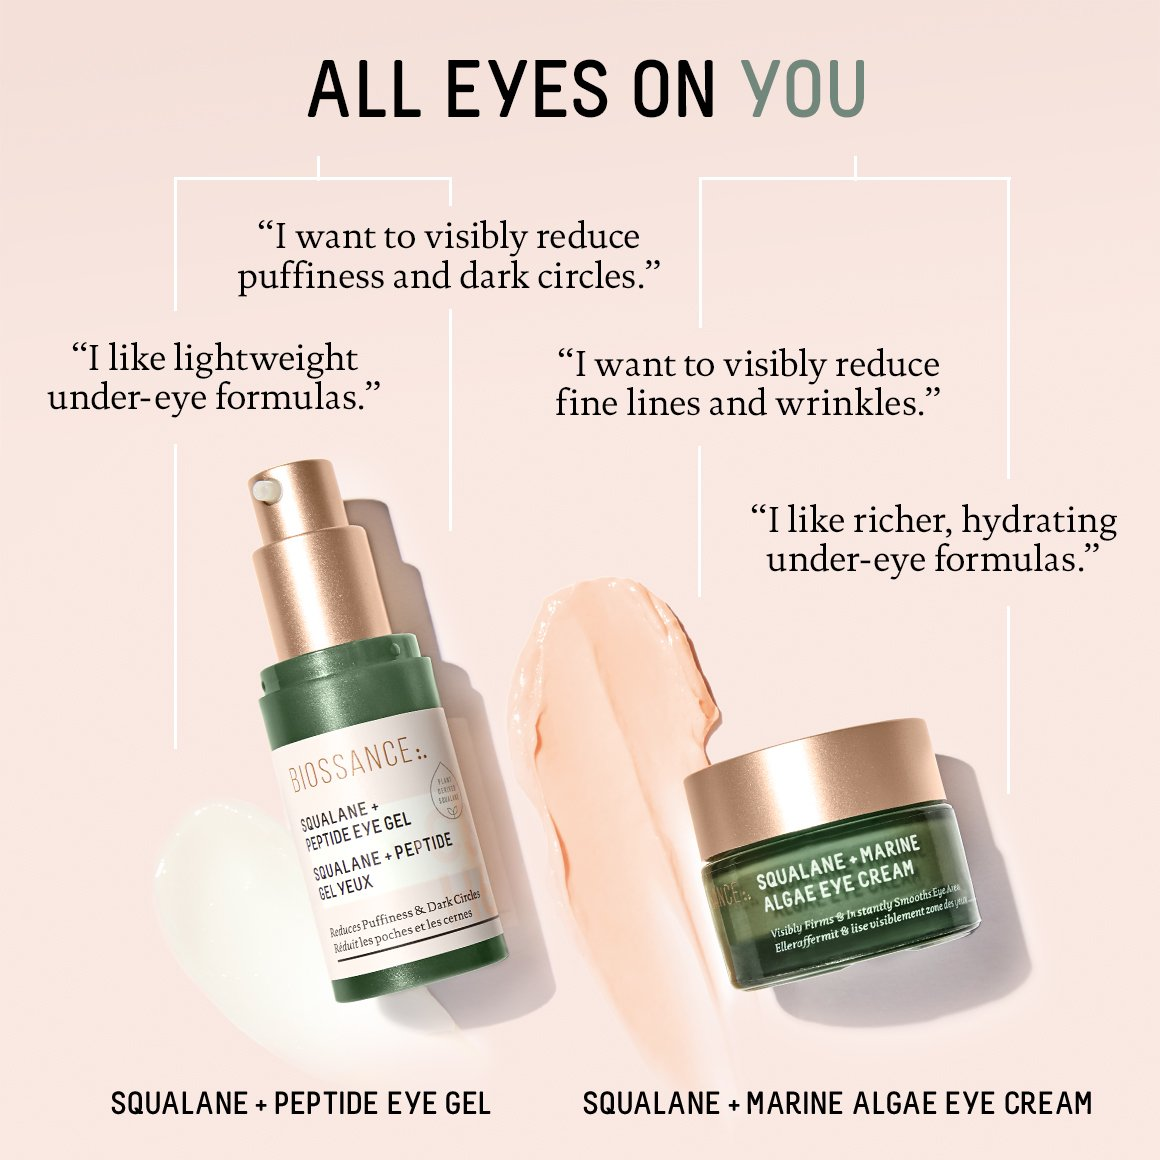 Squalane + Peptide Eye Gel